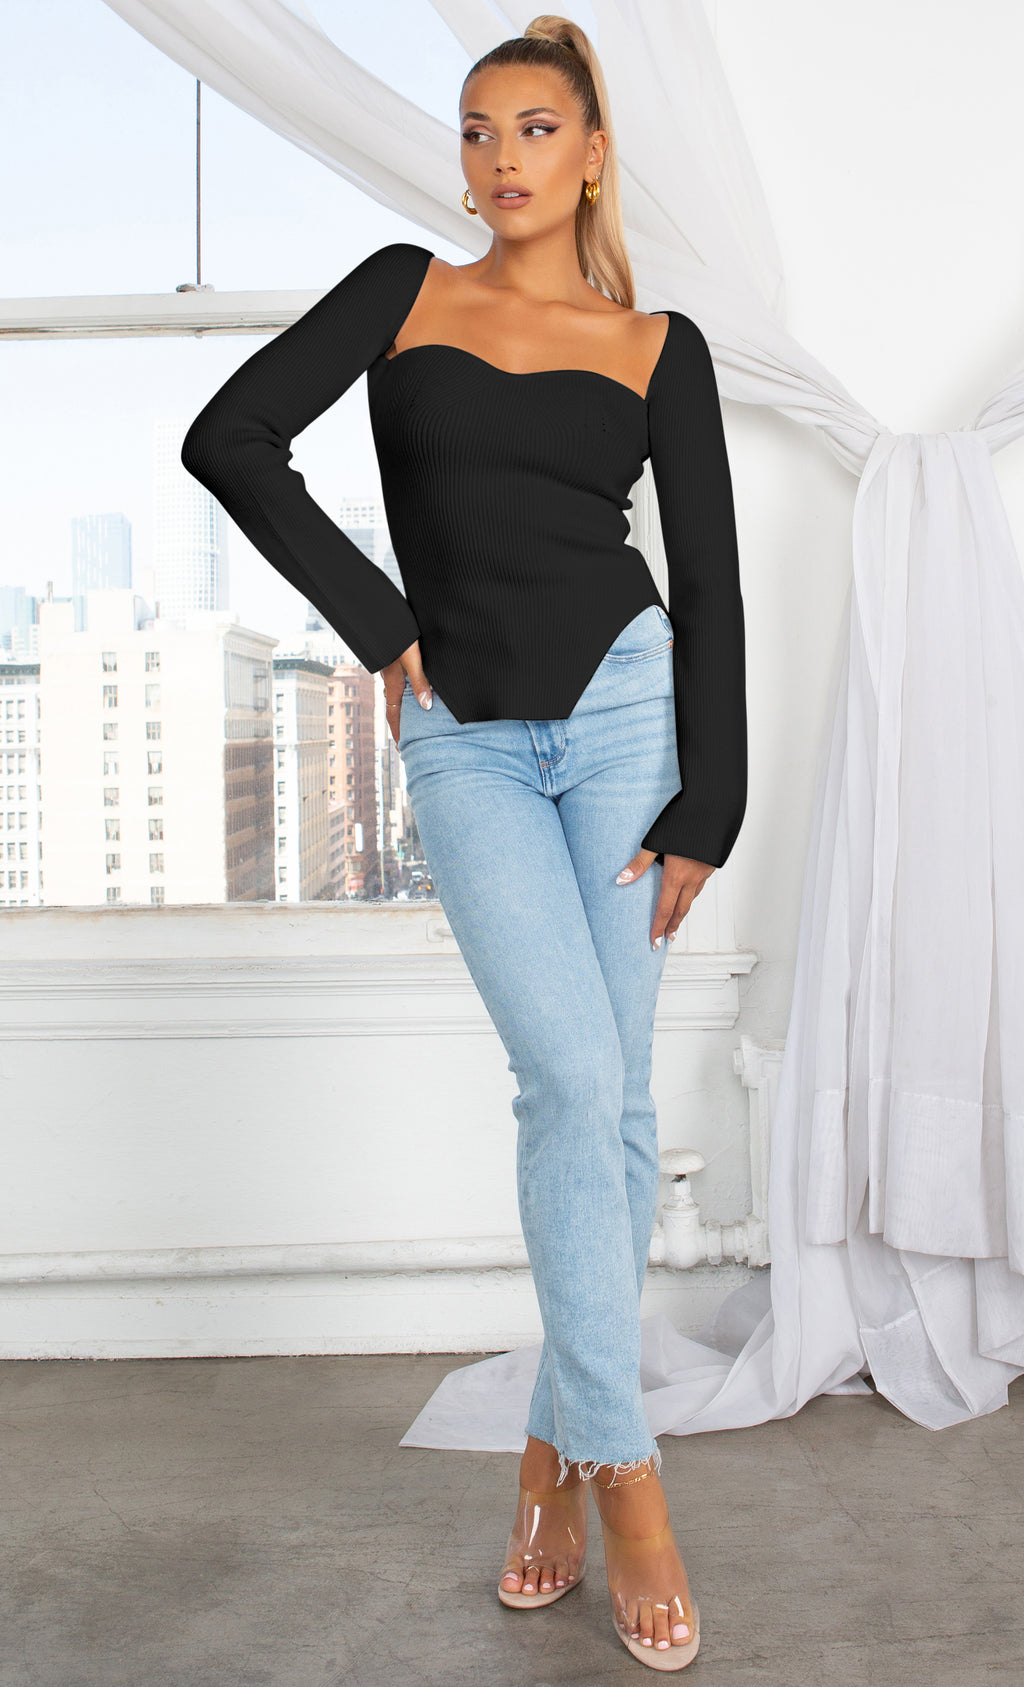 Parisian Soul Black Ribbed Long Sleeve Stretchy Bustier Sweetheart Neckline Cut Out Uneven Hem Pullover Sweater Knit Top